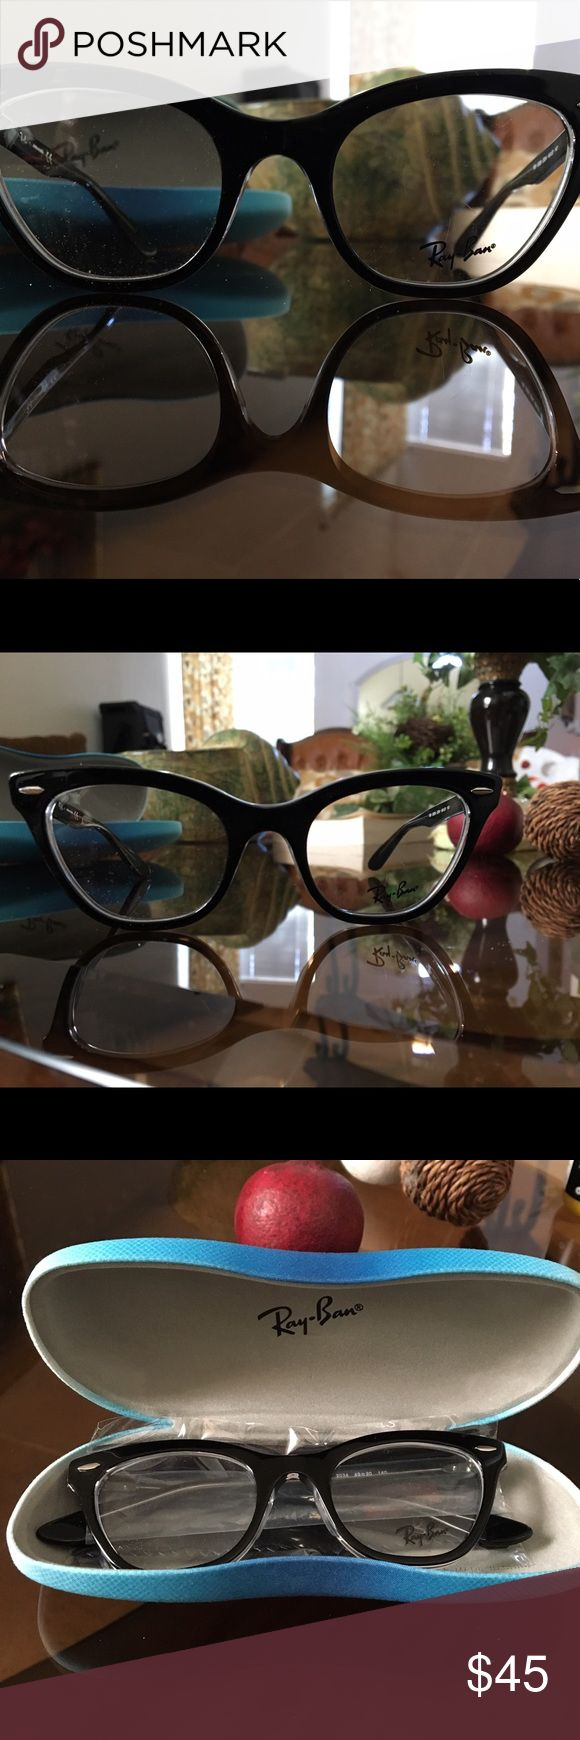 Ray-Ban, Cat eye frames. Cat-eyed frames by Ray-Ban (Made in China) *See pictures above* Brand new, never worn, they're just too small for my face. No scratches on frame, at least none that I could see tbh. Lenses are meant to be replaced with your prescribed ones. Ray-Ban Accessories Glasses